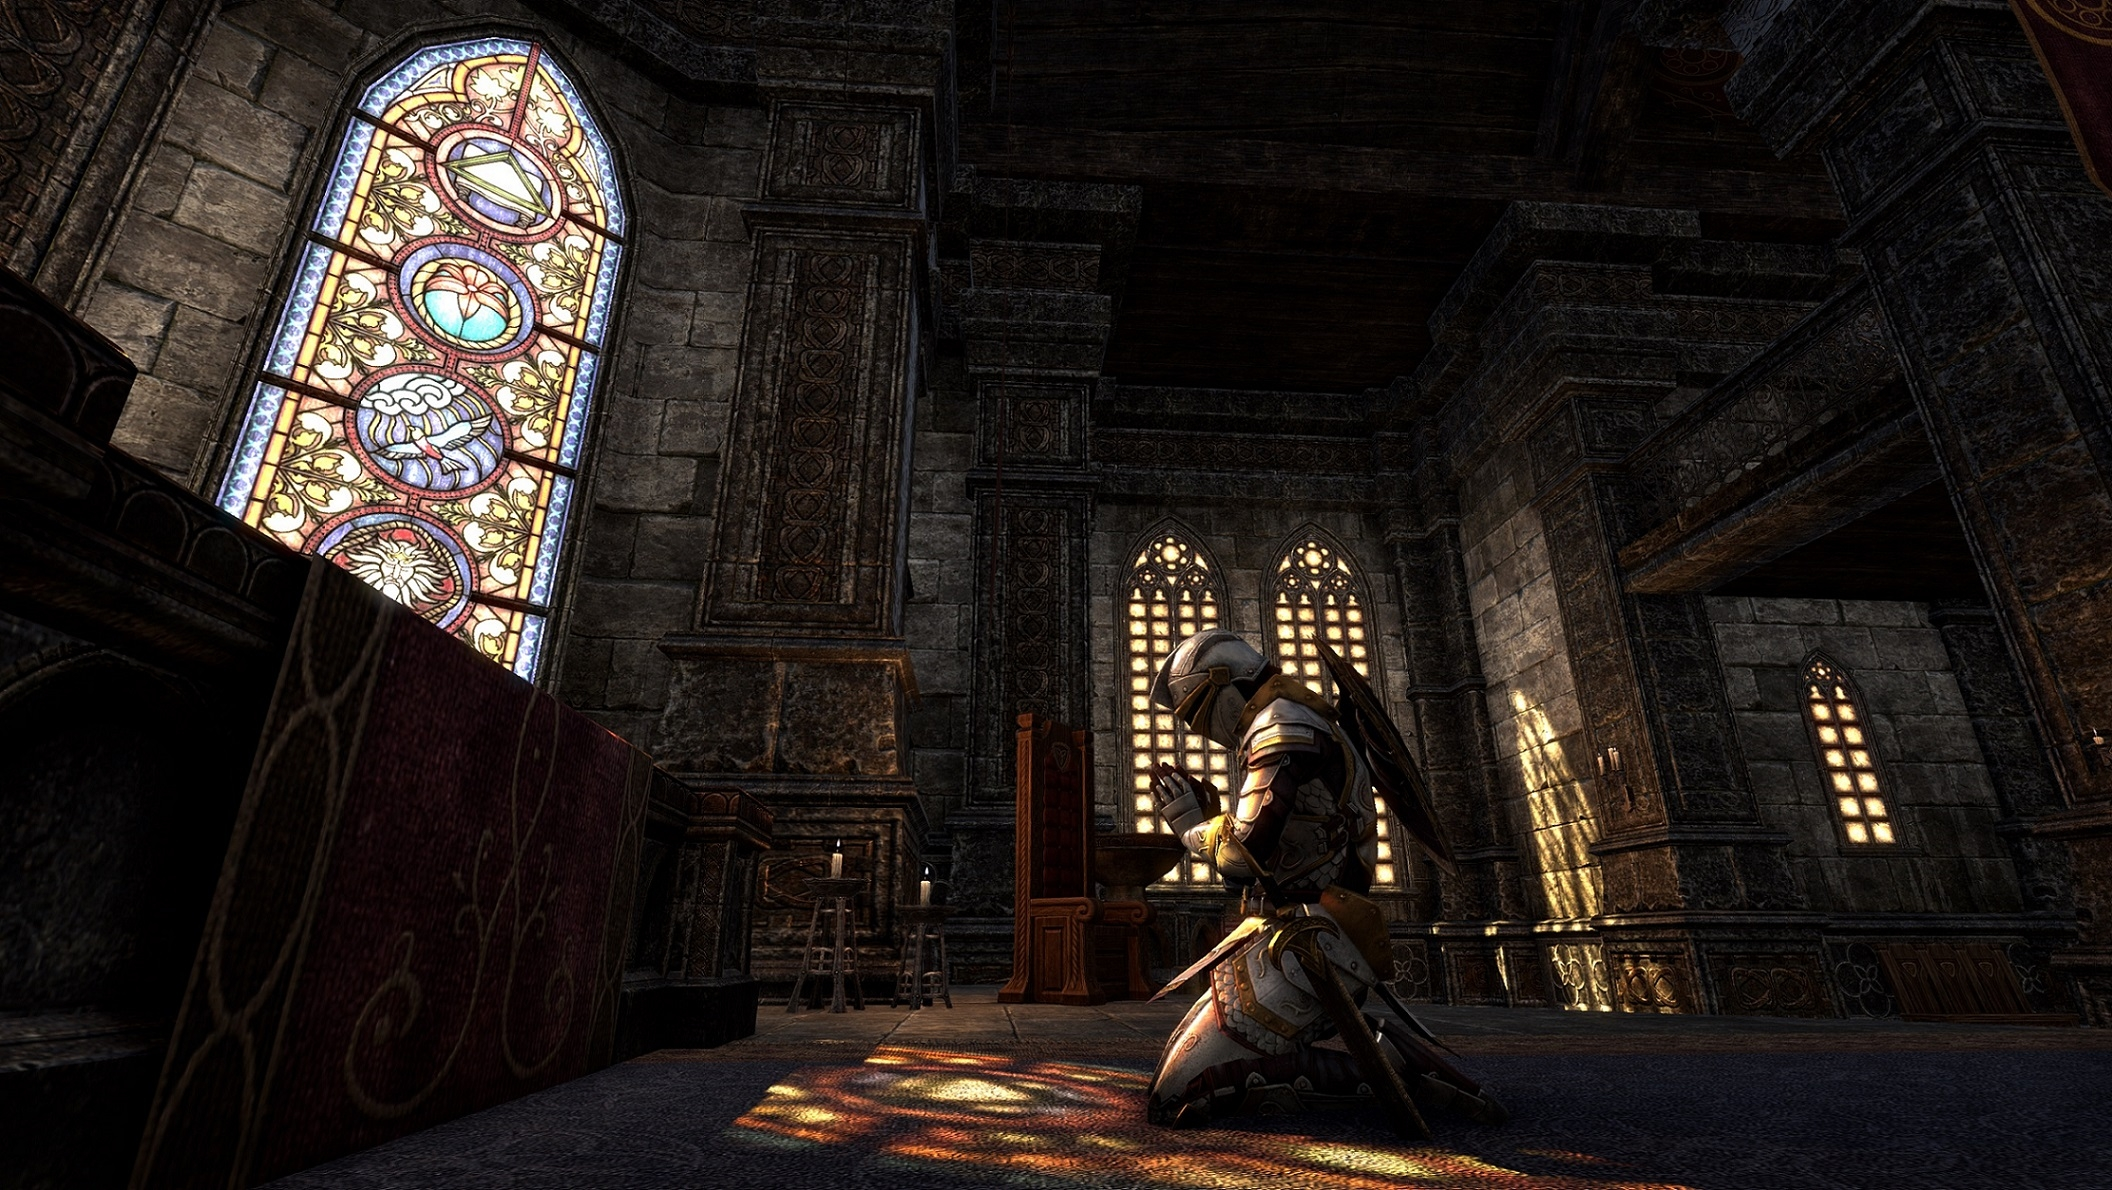 Elder Scrolls Online Xbox One/PS4 Beta Starts Tomorrow, Massive File Size Revealed